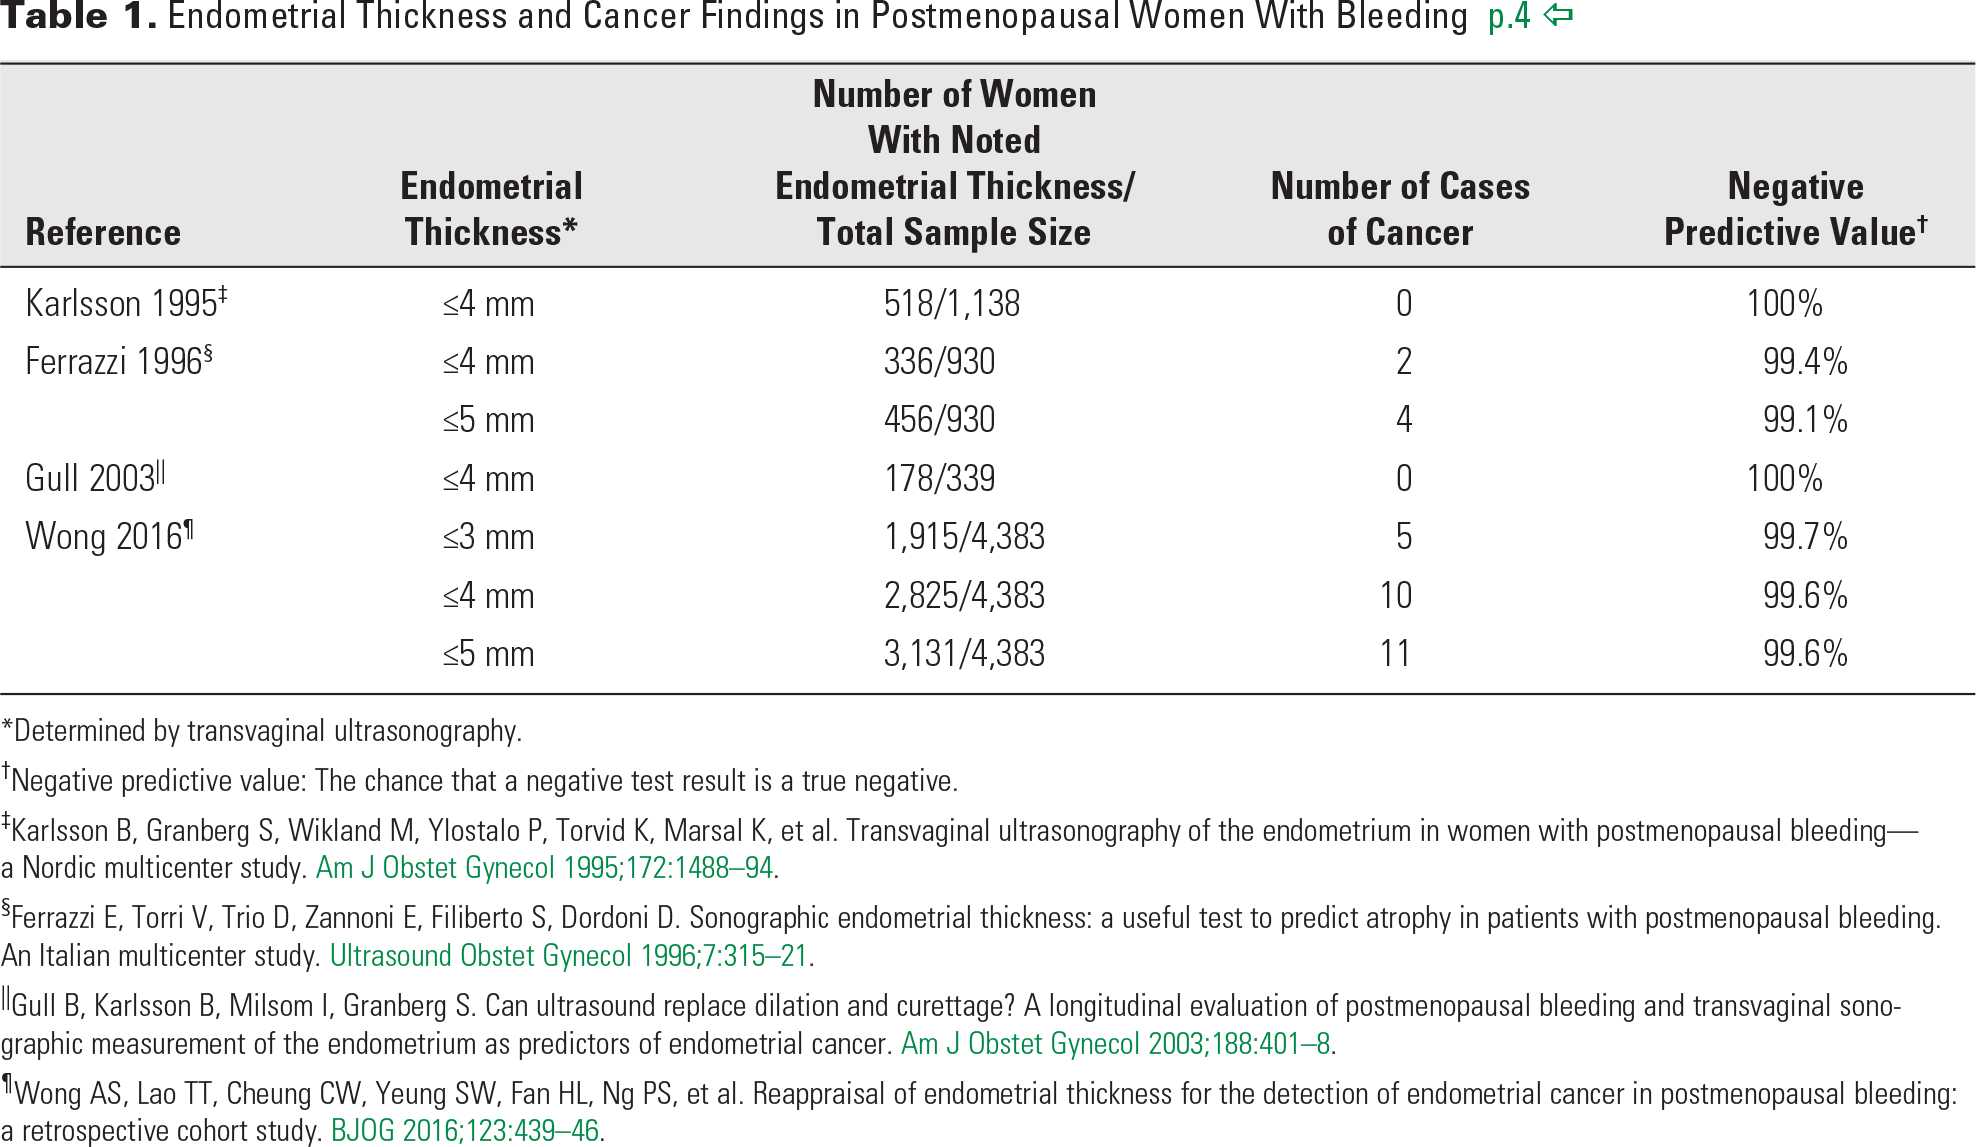 Table 1. Endometrial Thickness and Cancer Findings in Postmenopausal Women With Bleeding p.4